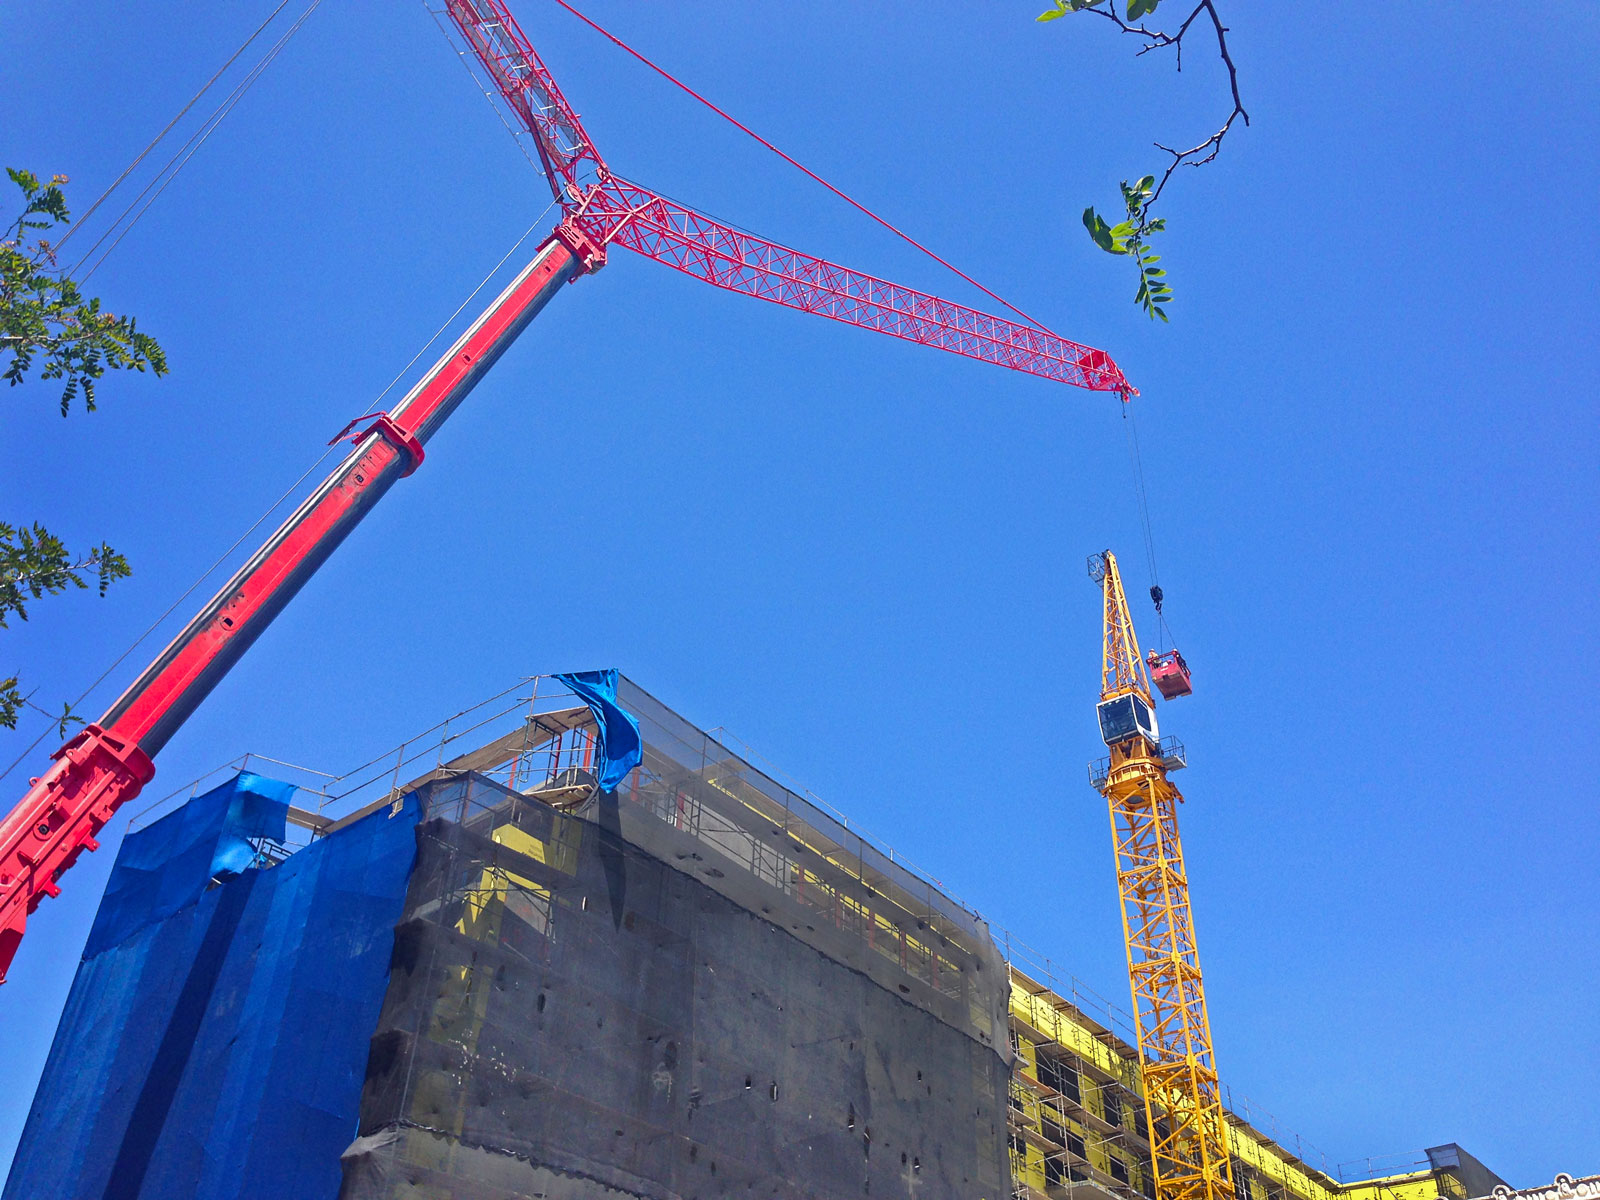 File photo: Construction Crane lifts workers to remove existing structure.